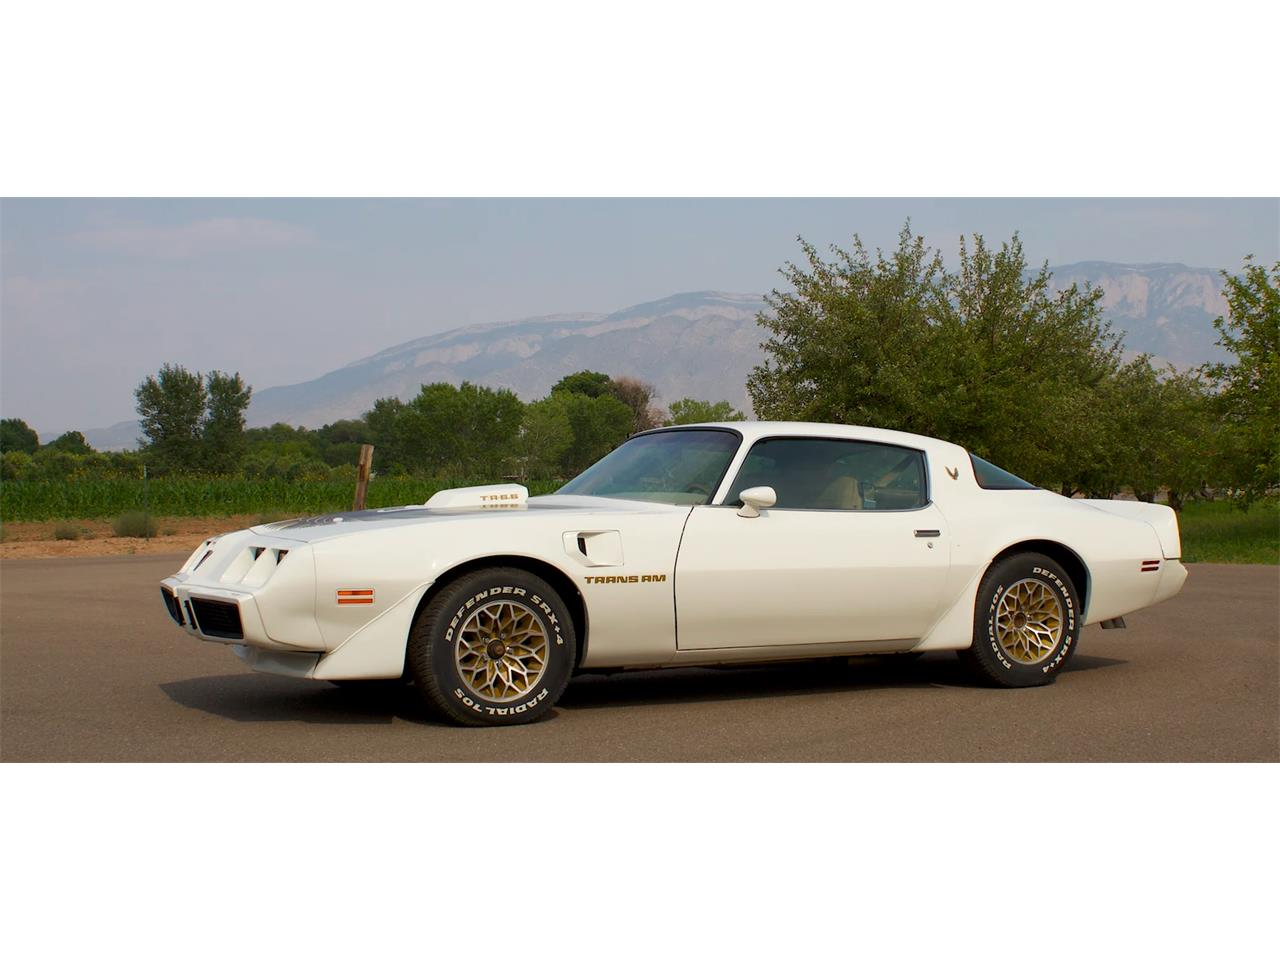 1979 Pontiac Firebird Trans Am (CC-1387943) for sale in Corrales, New Mexico